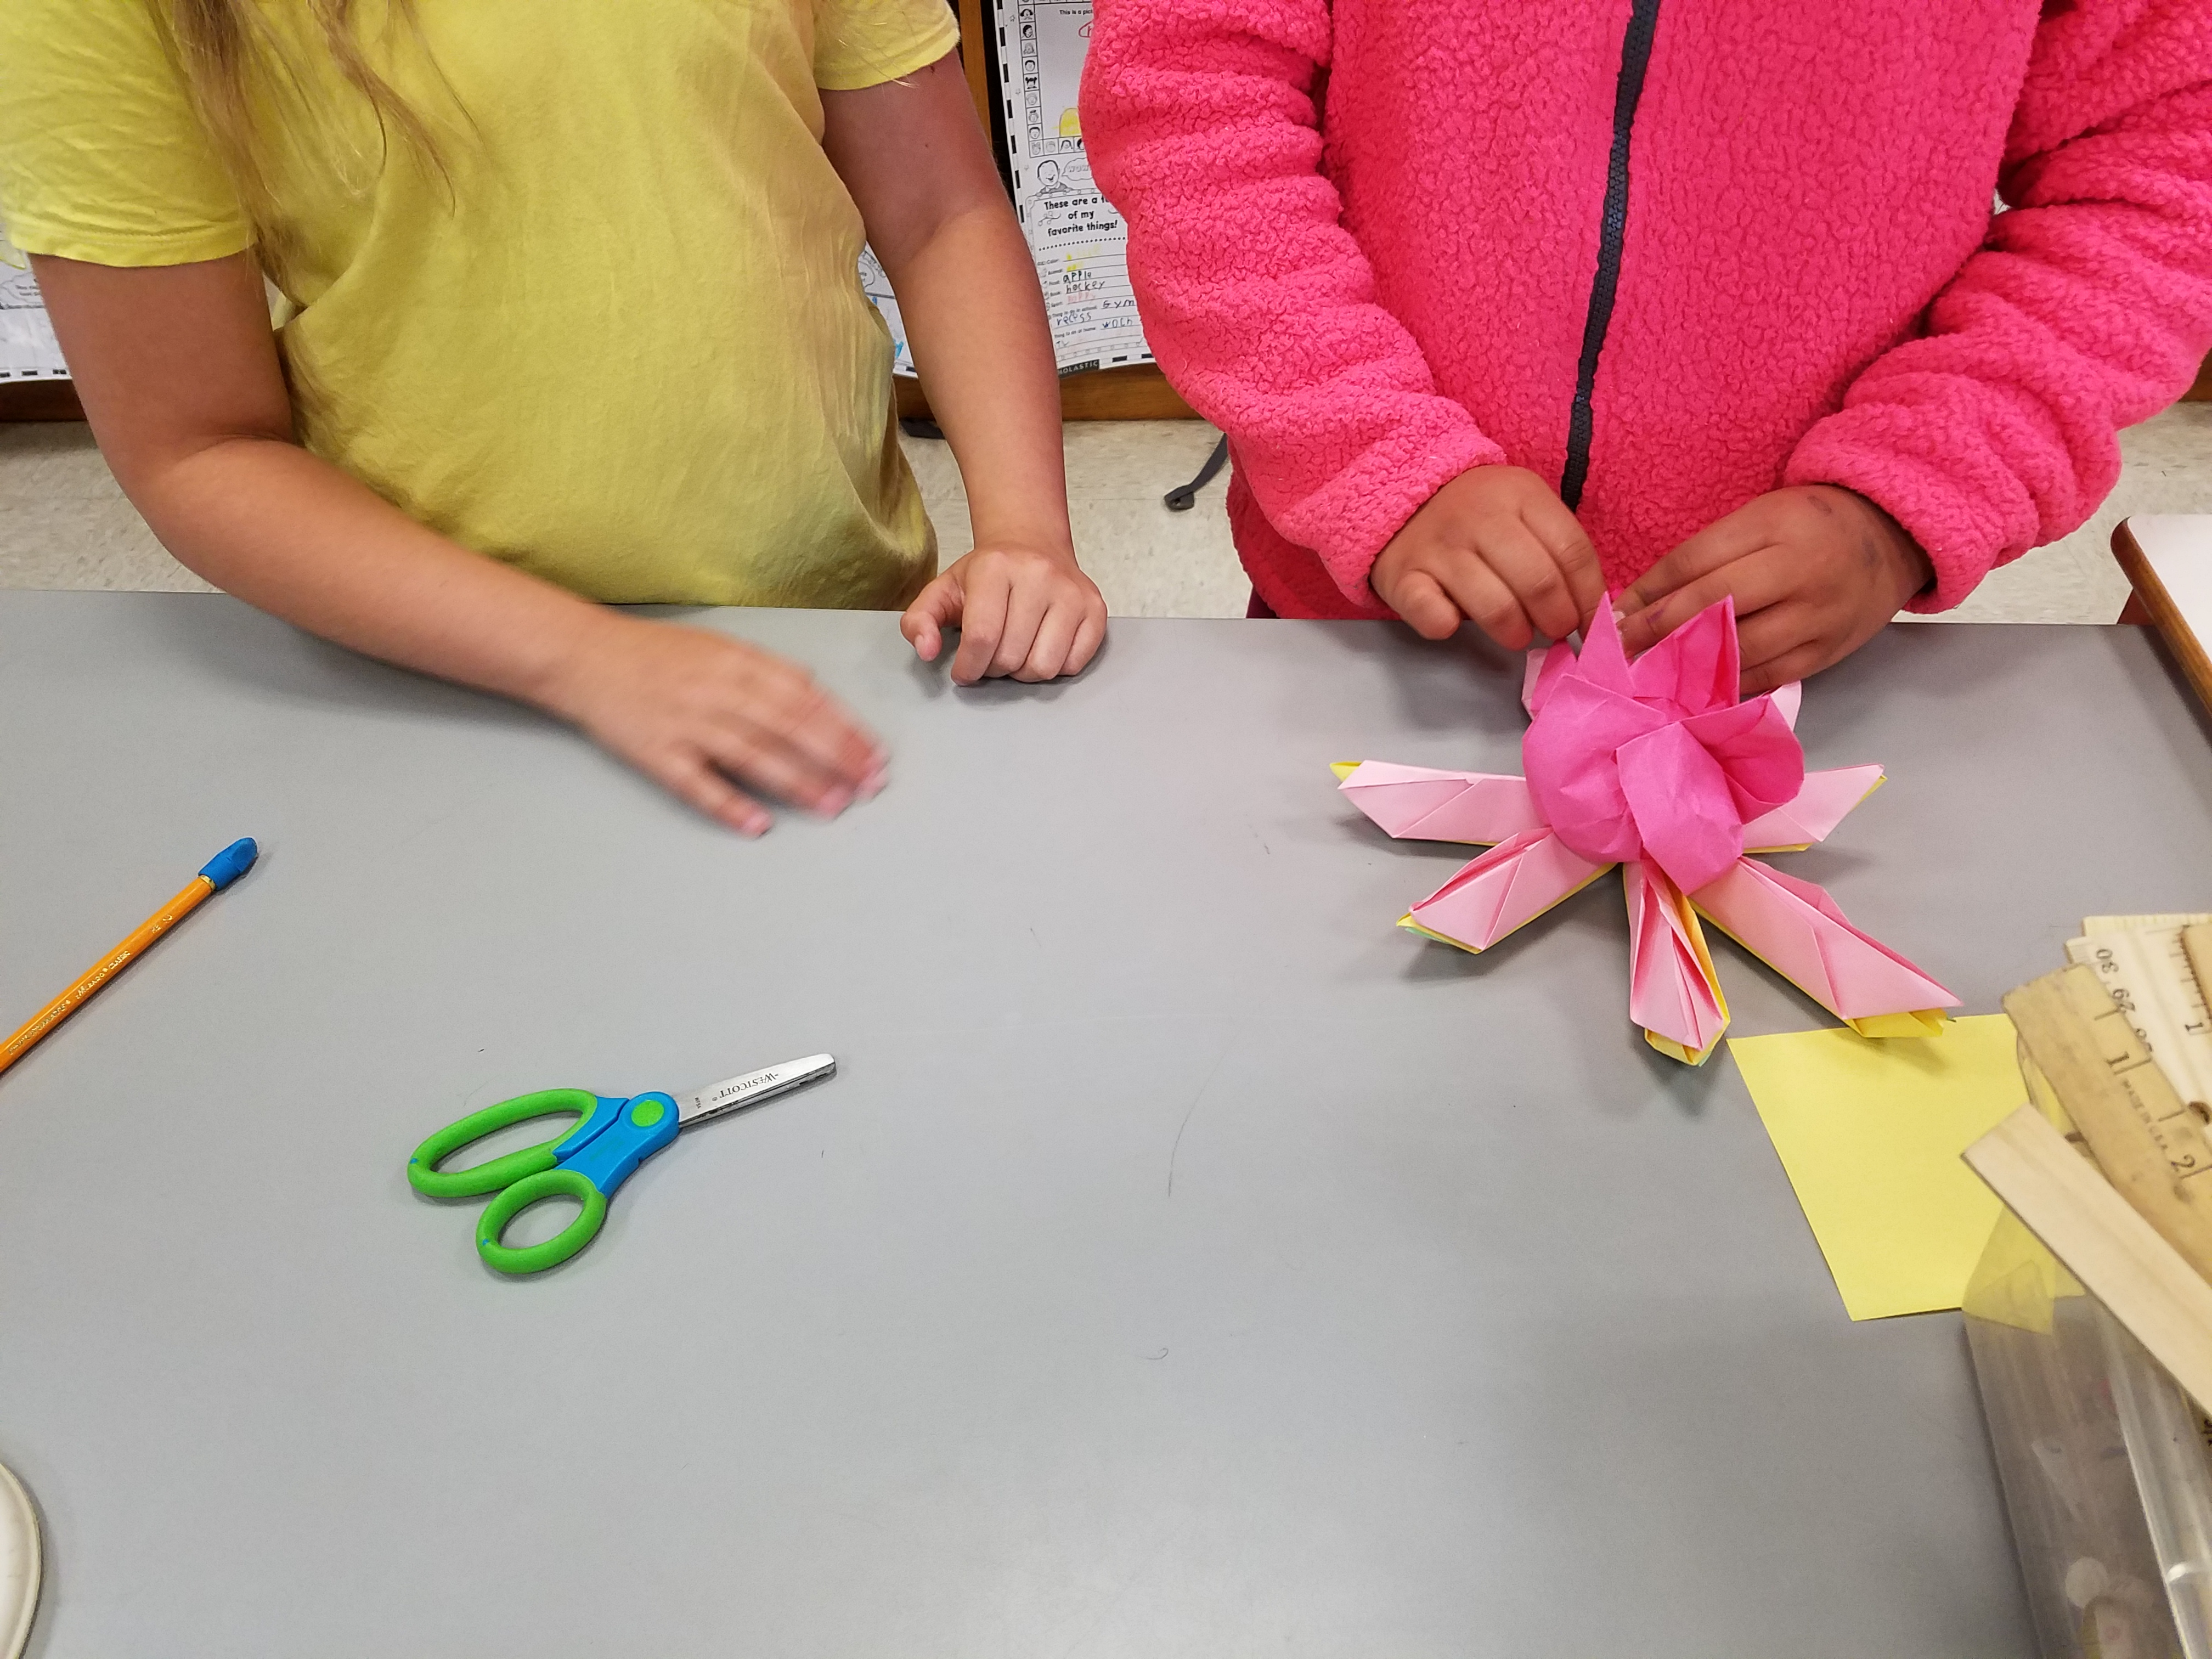 Sharing friendly fridays making origami lotus flowers the a 4th grade buddy shows a 2nd grade buddy how to create the petals of the izmirmasajfo Image collections